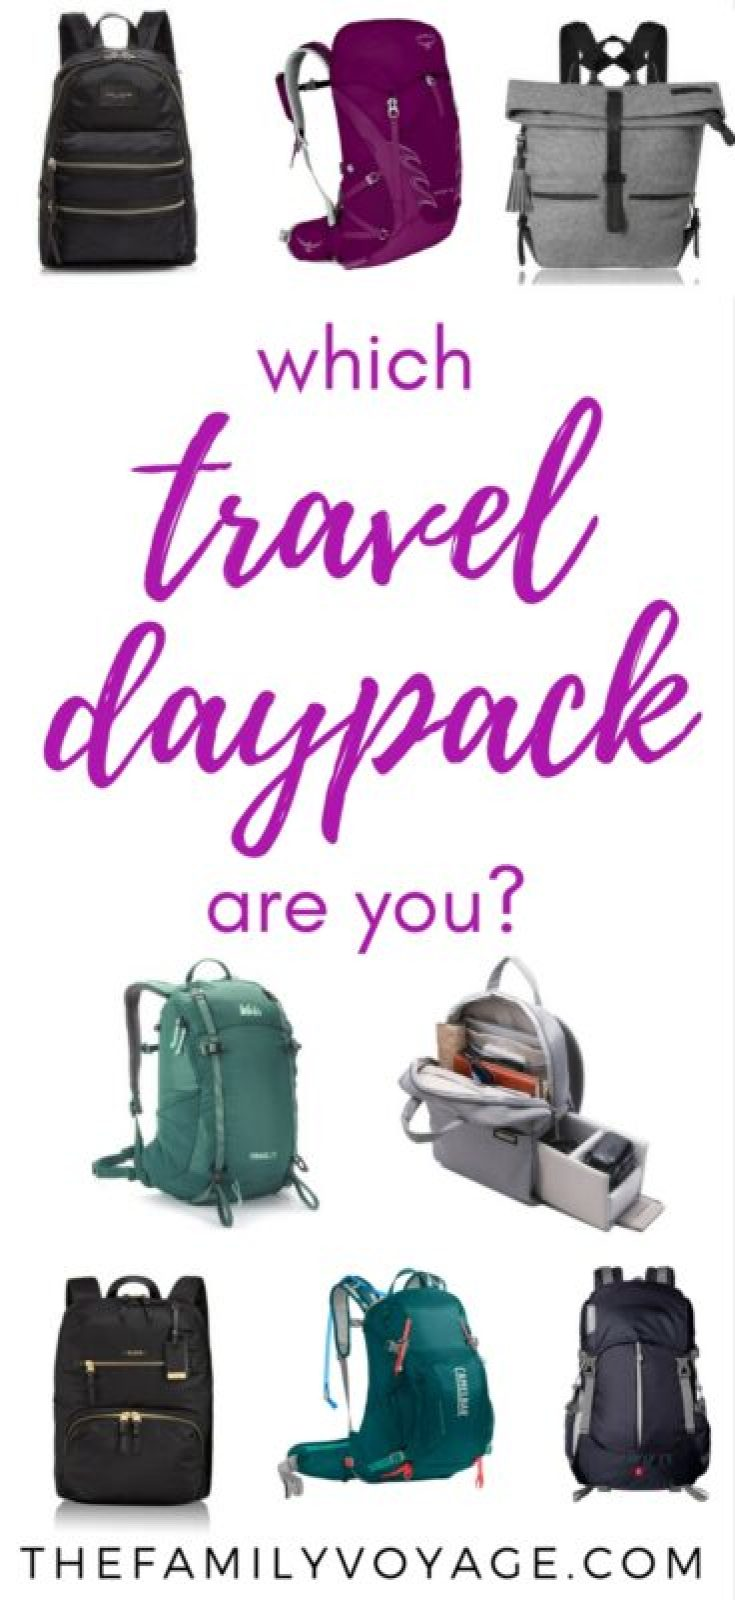 Since I forgot to bring a daypack for travel on our trip around the world, I've spent plenty of time lusting after these daypacks for women. Whether you prefer a hiking backpack, more stylish backpacks or even a camera backpack, you'll find great choices. What's you fave? #travel #gear #femaletravel #backpack